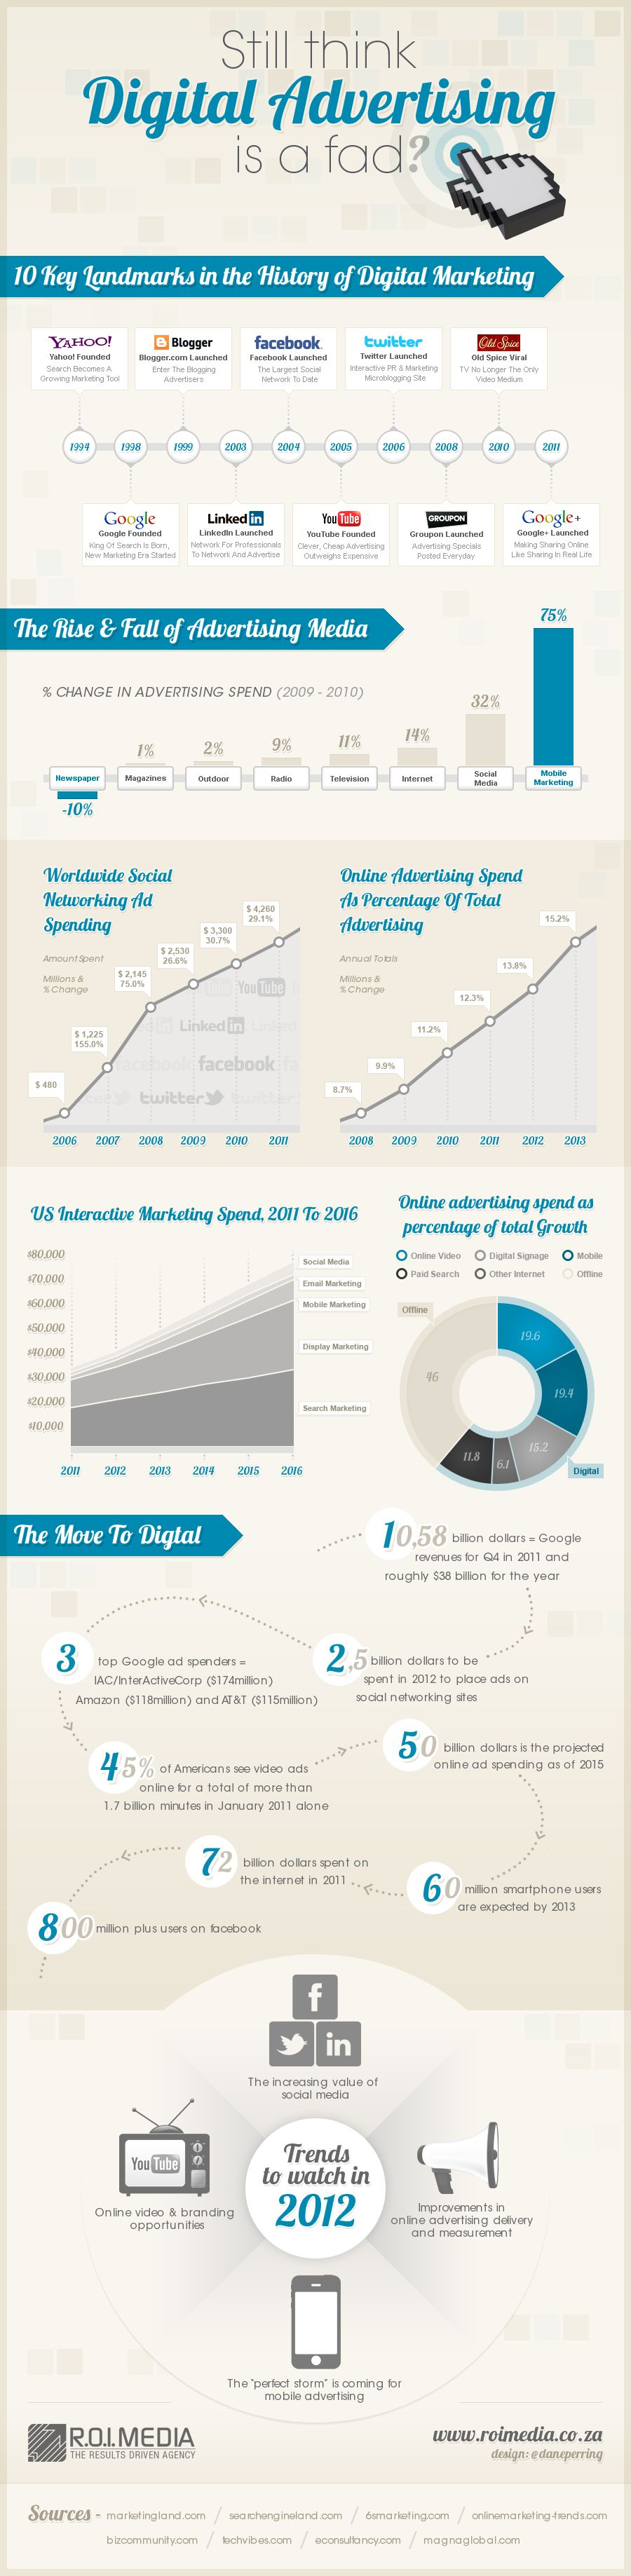 Still think Digital Advertising is a fad? [Infographic]